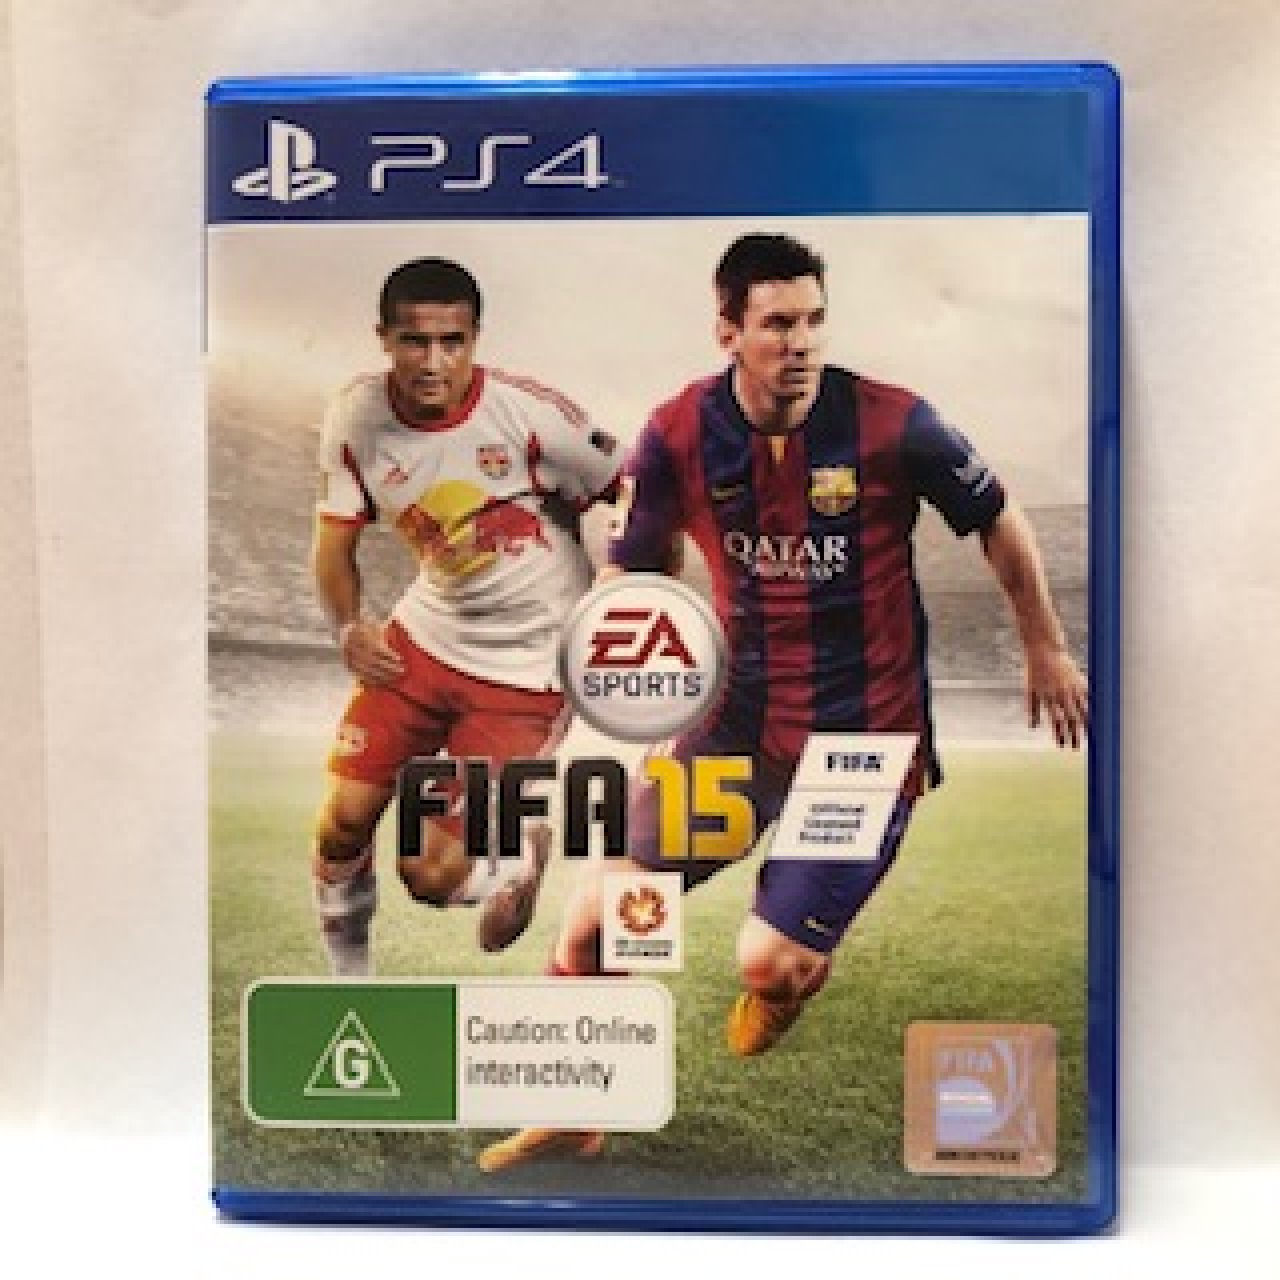 PS4 - EA Sports - FIFA 15 - Game